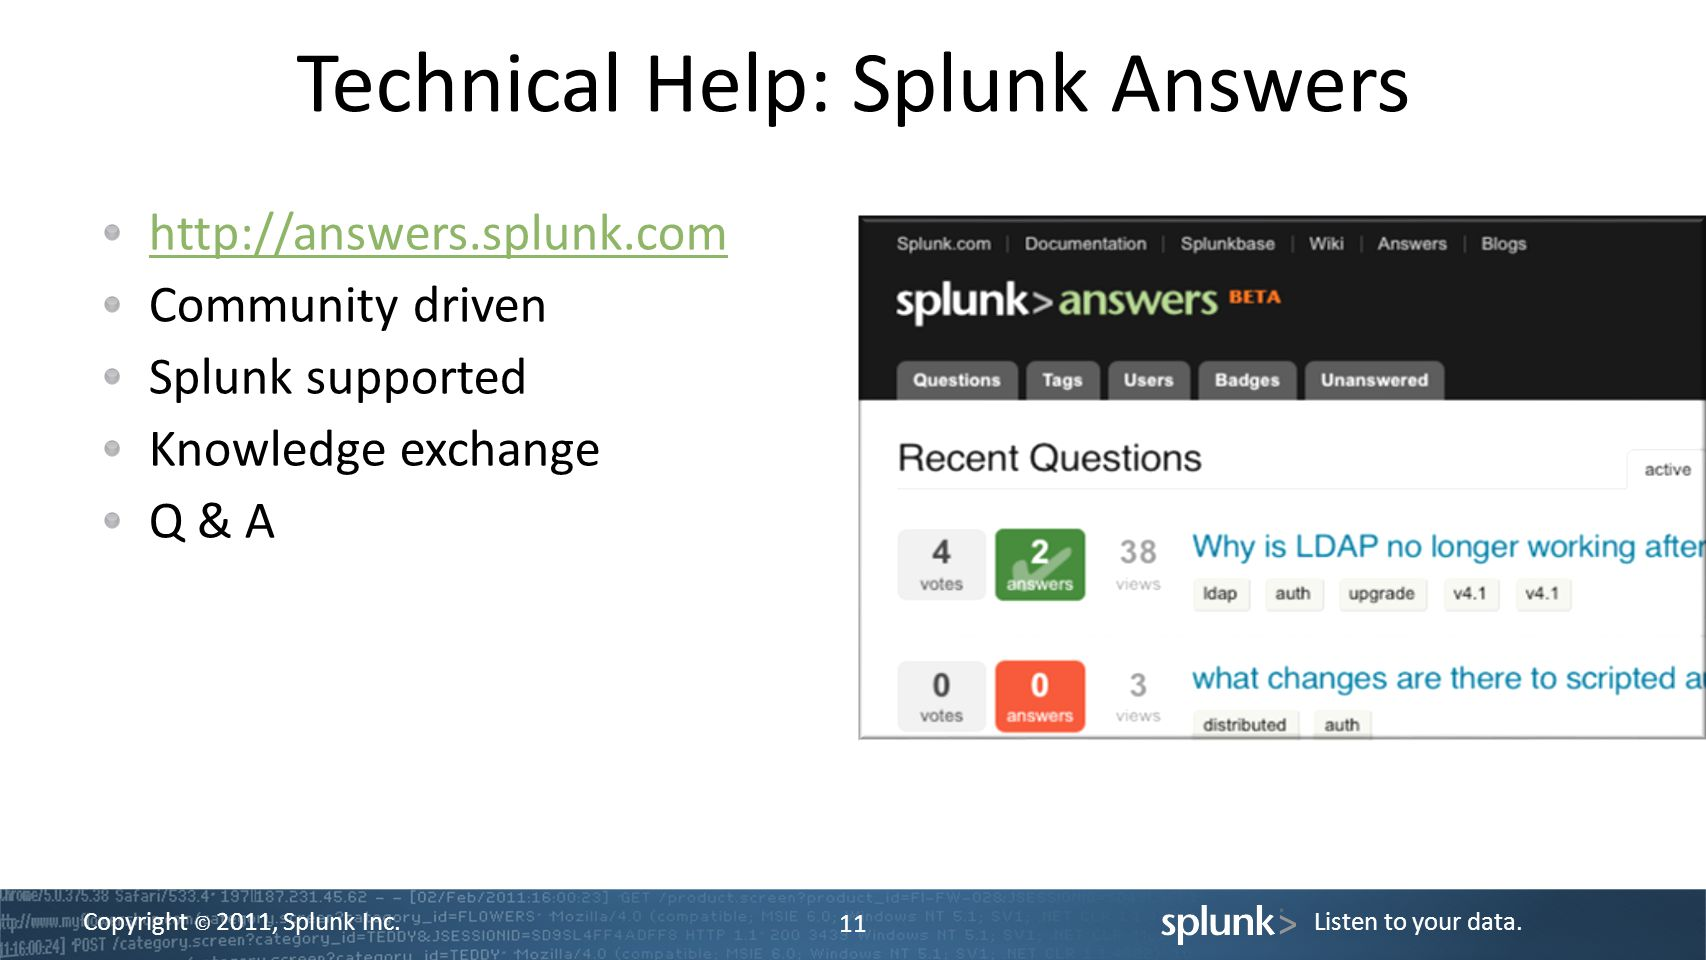 Technical Help: Splunk Answers